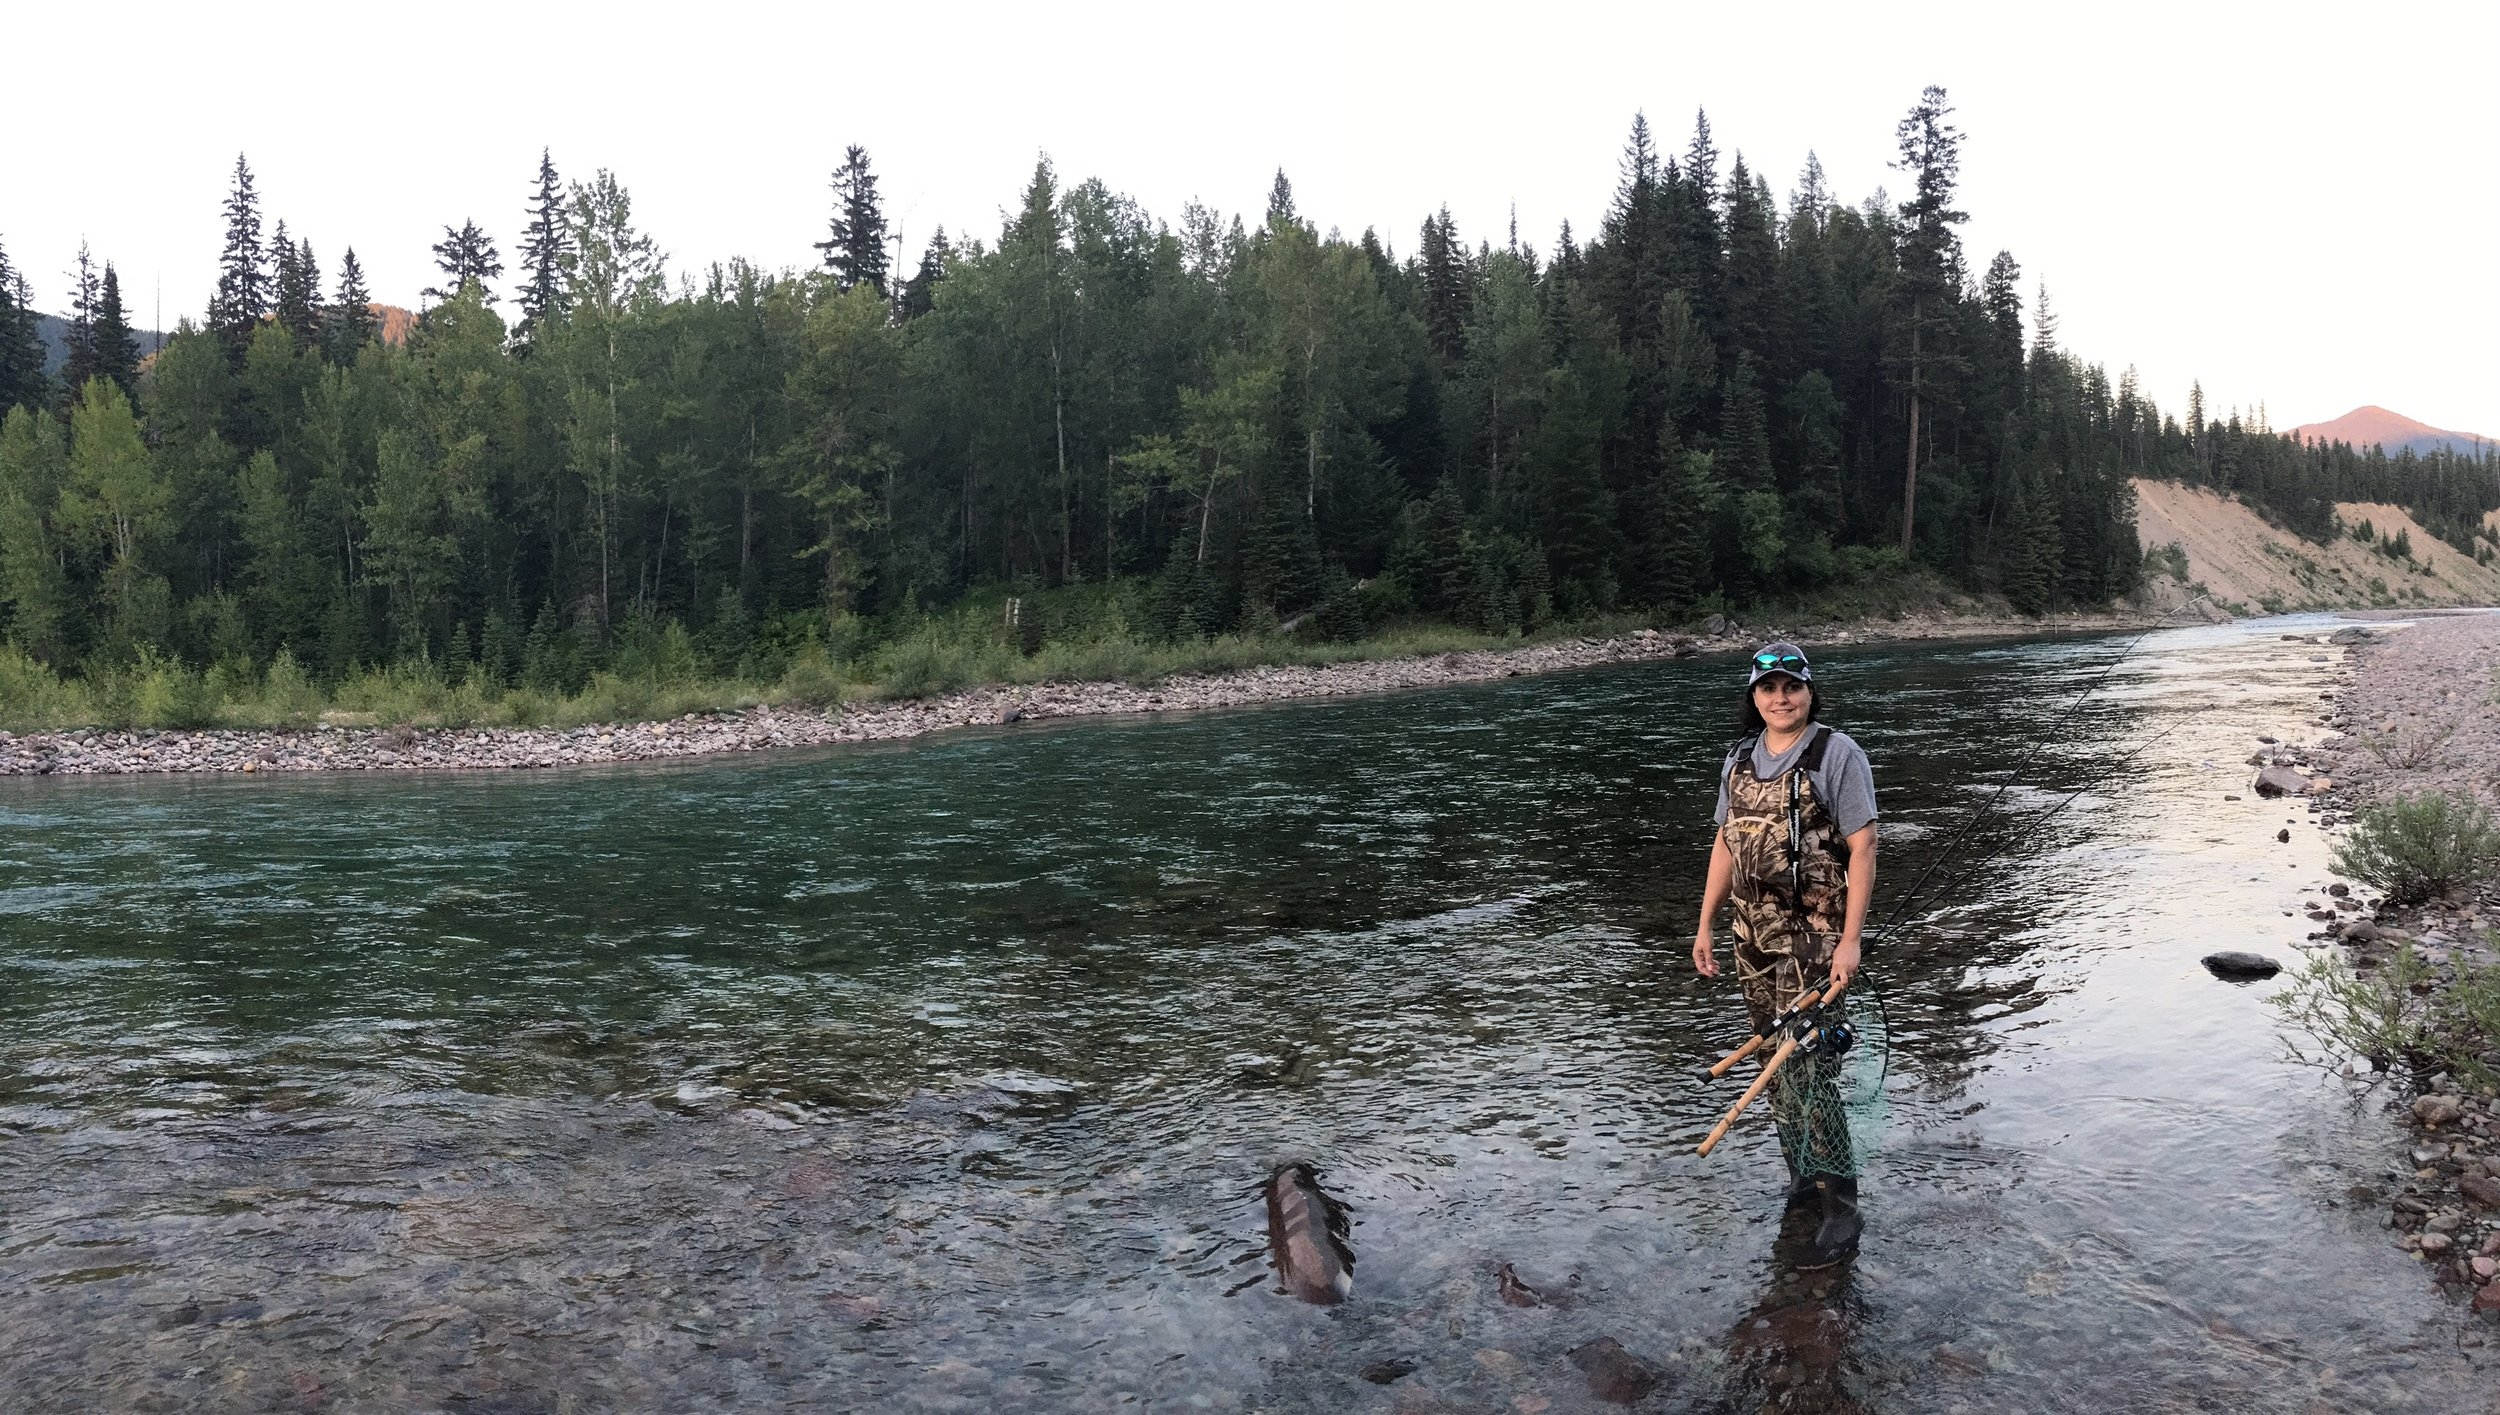 Aline steps into the Flathead River